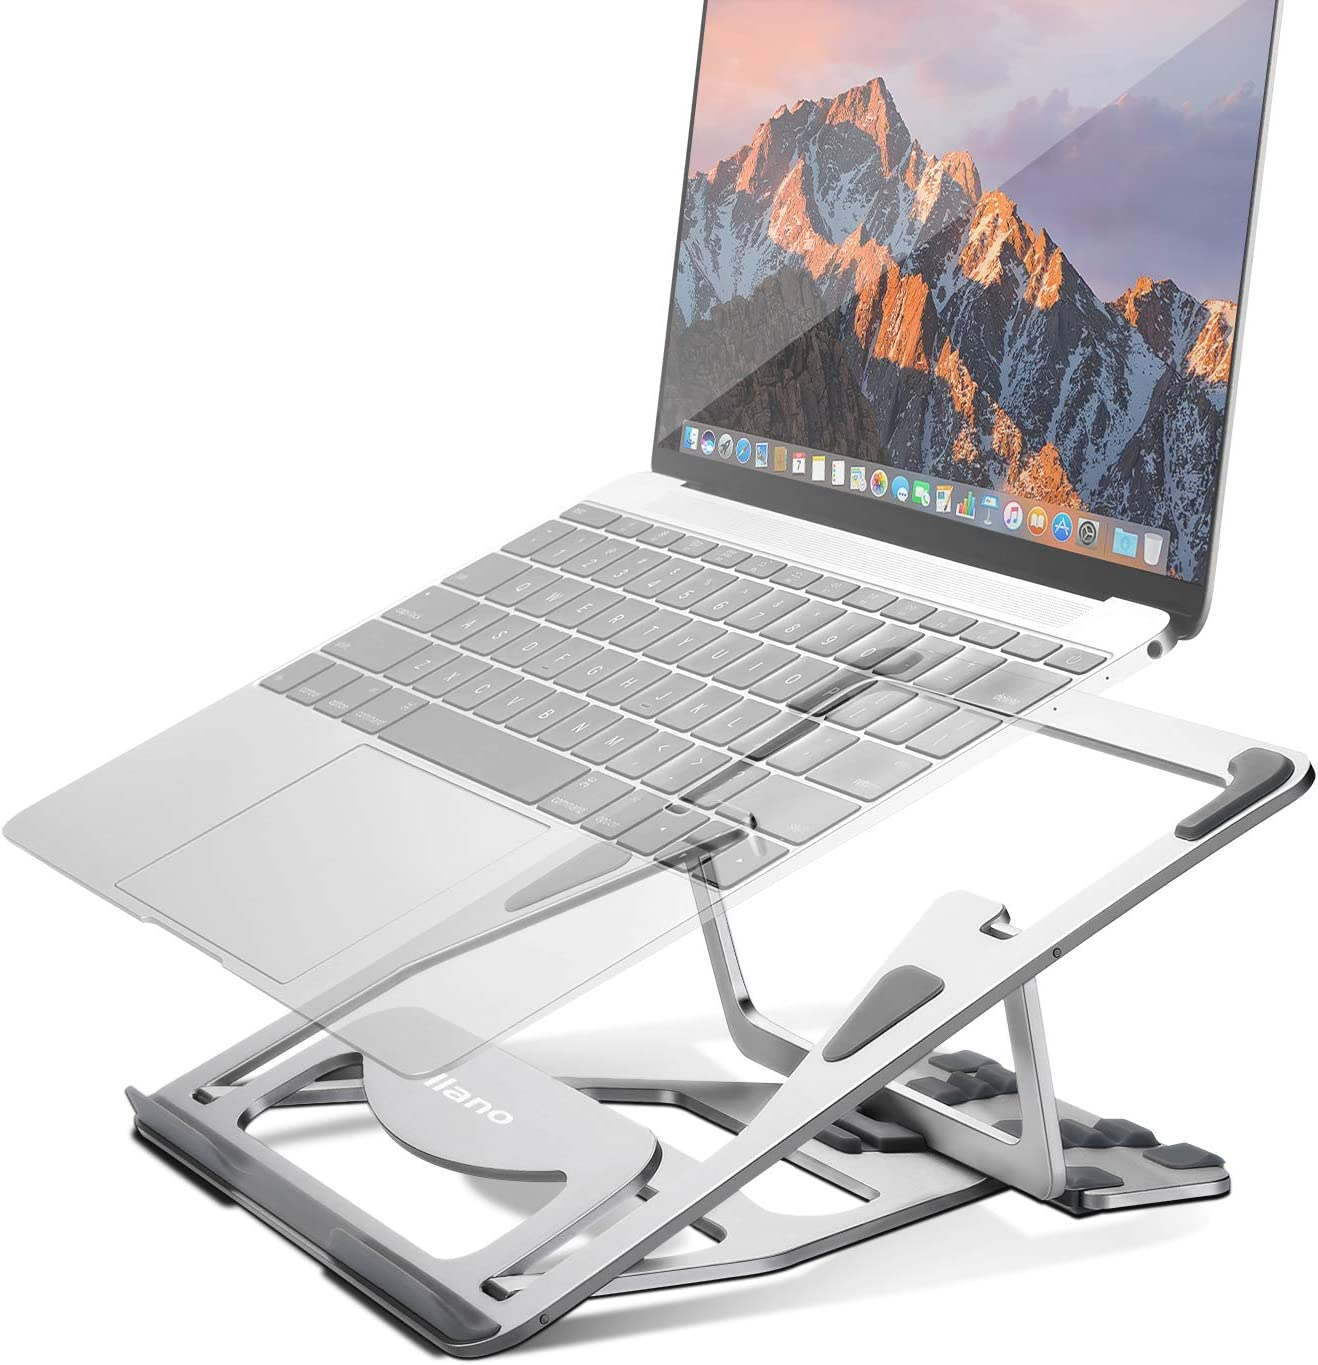 "Aluminum Laptop Stand Adjustable, Foldable Ergonomic Portable Laptop Riser, Ventilated Stand Holder for MacBook Pro/Air, HP, Dell XPS, Lenovo More 10-15.6"" Laptops"